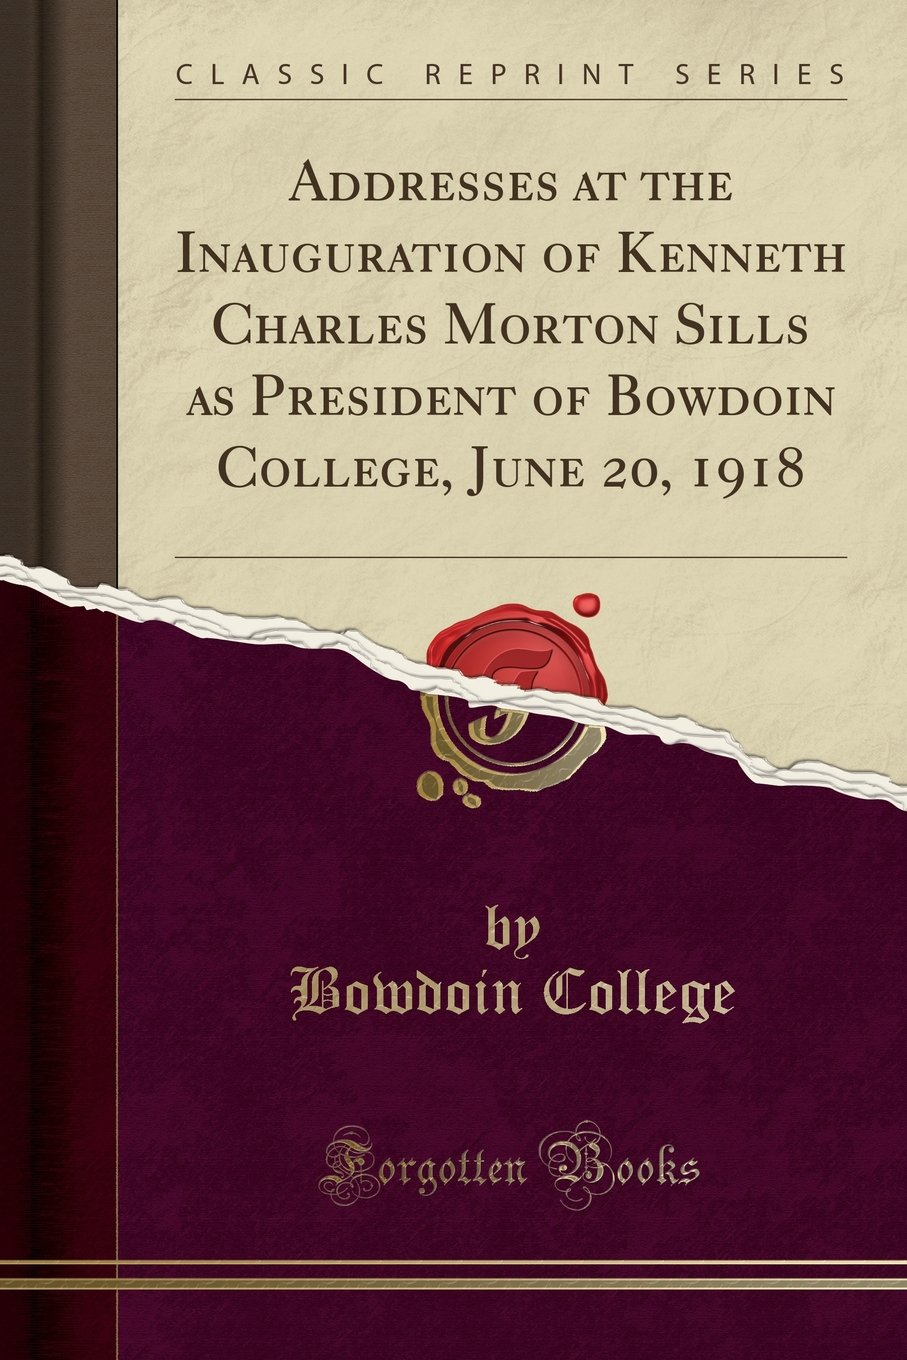 Download Addresses at the Inauguration of Kenneth Charles Morton Sills as President of Bowdoin College, June 20, 1918 (Classic Reprint) ebook